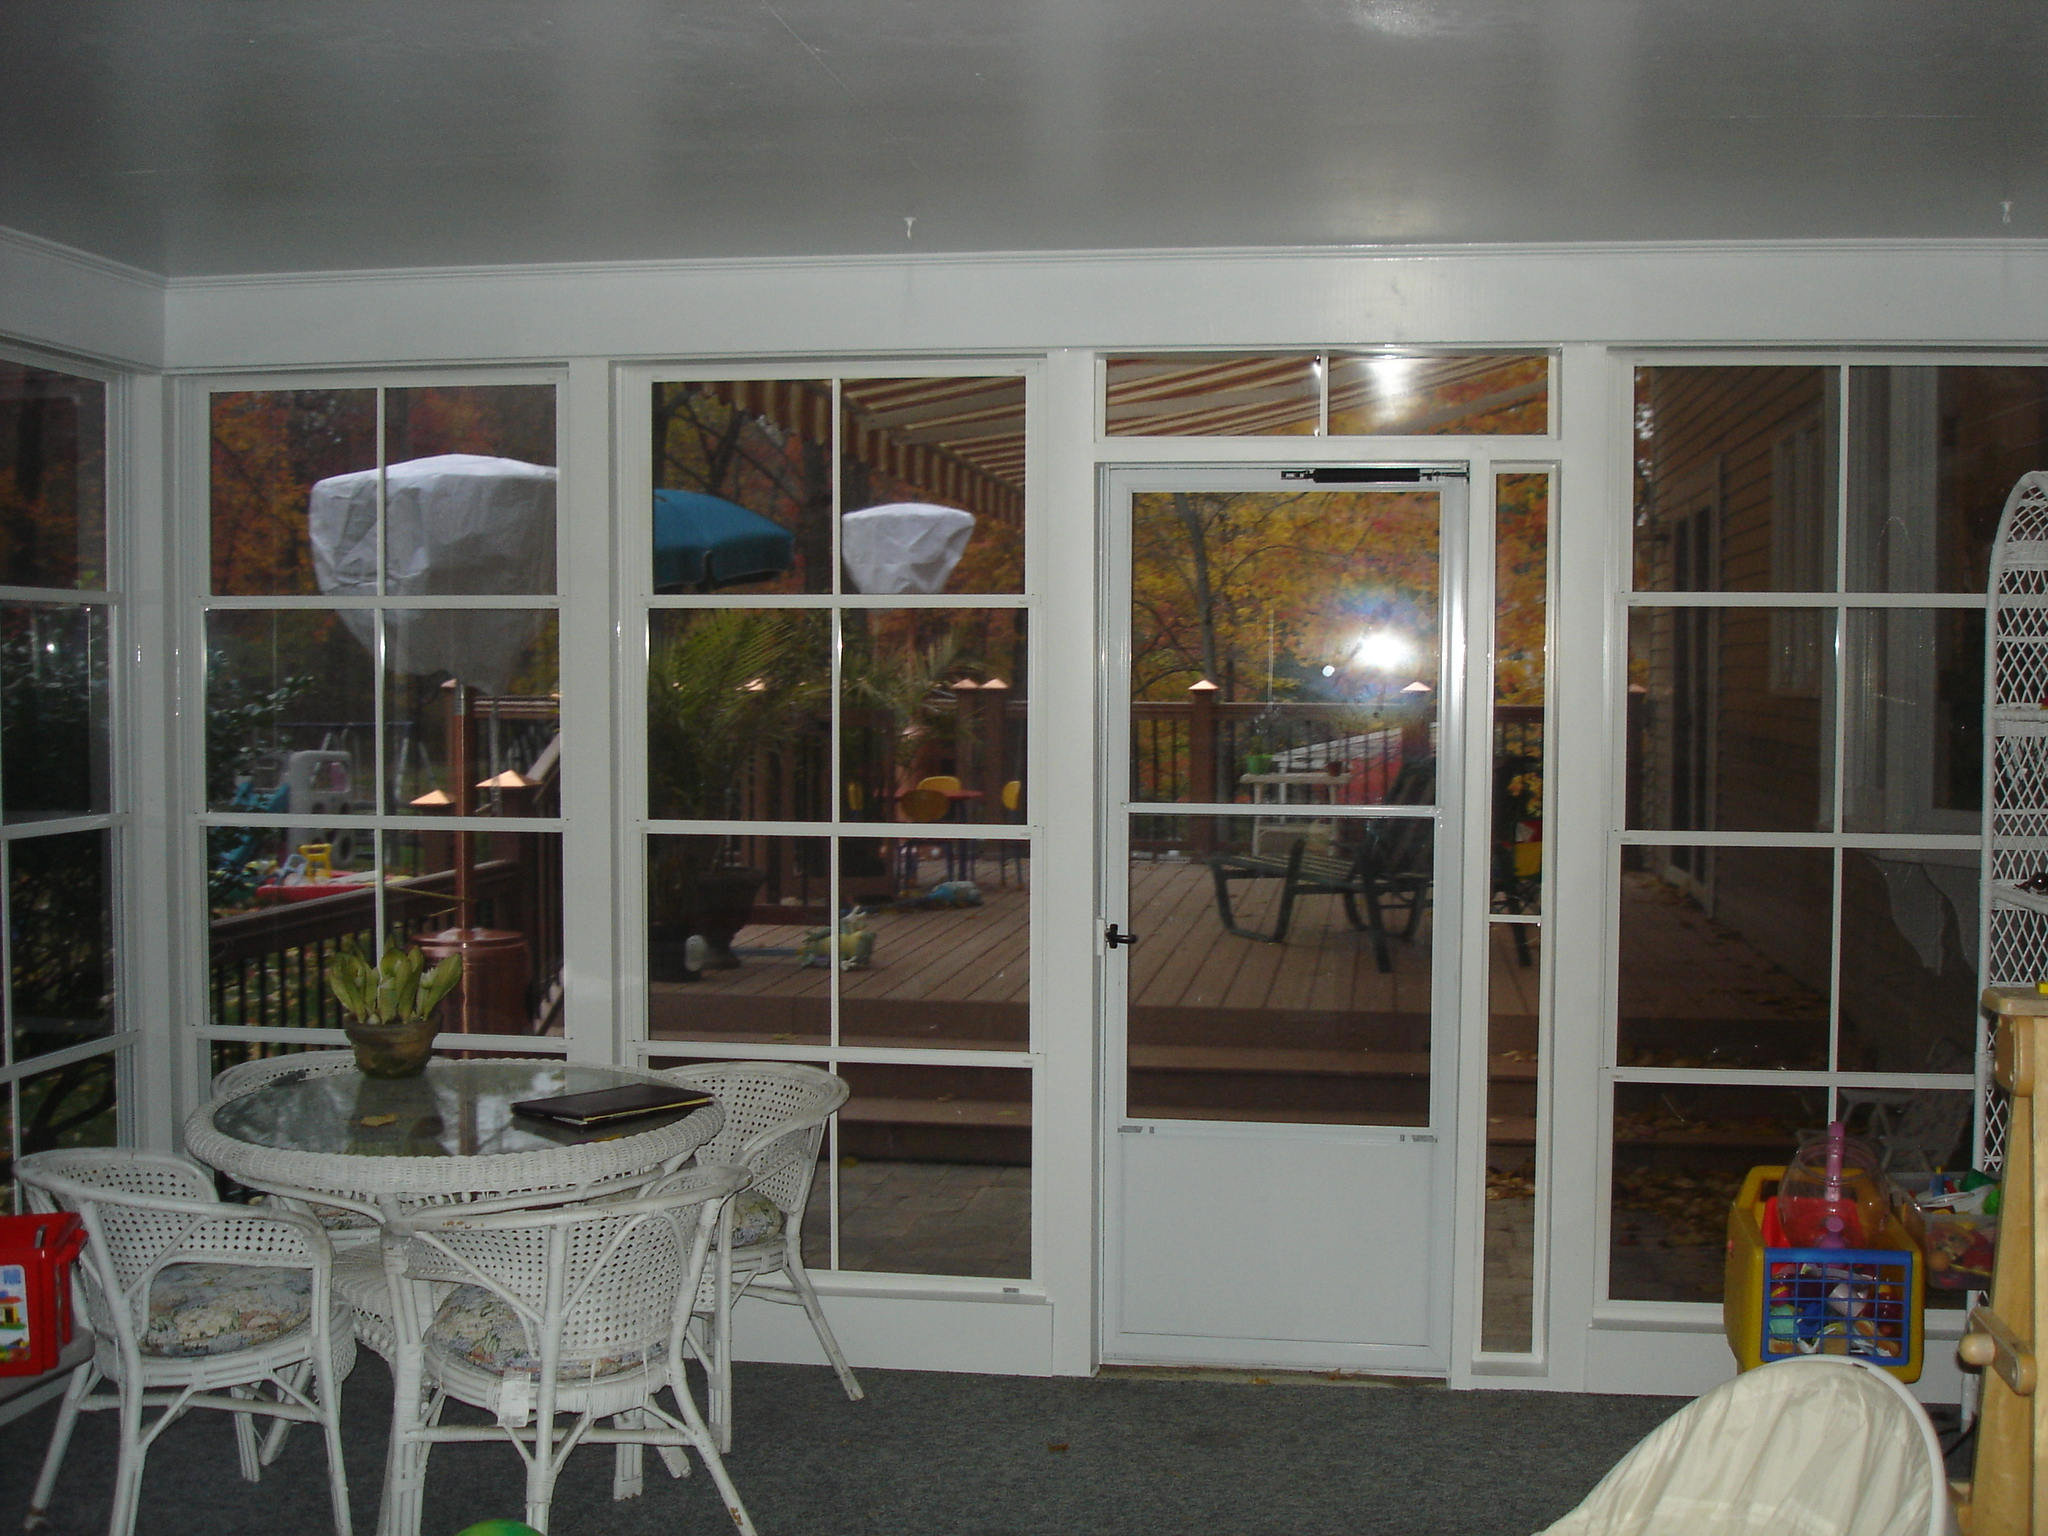 interior view of new enclosure with storm door out to awning area